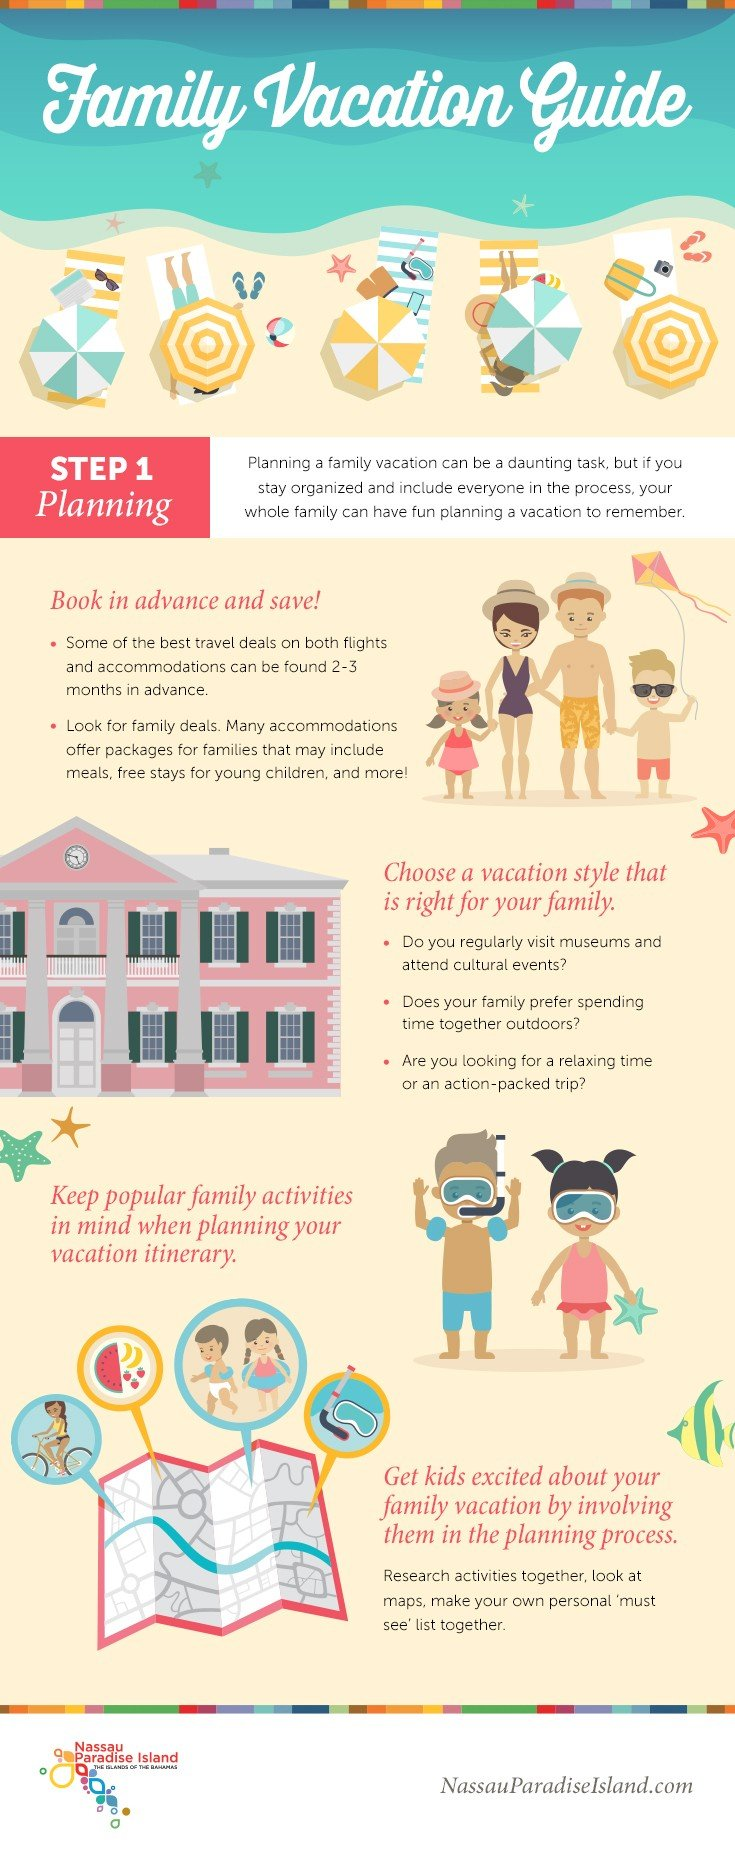 Infographic with planning tips for a family vacation in The Bahamas